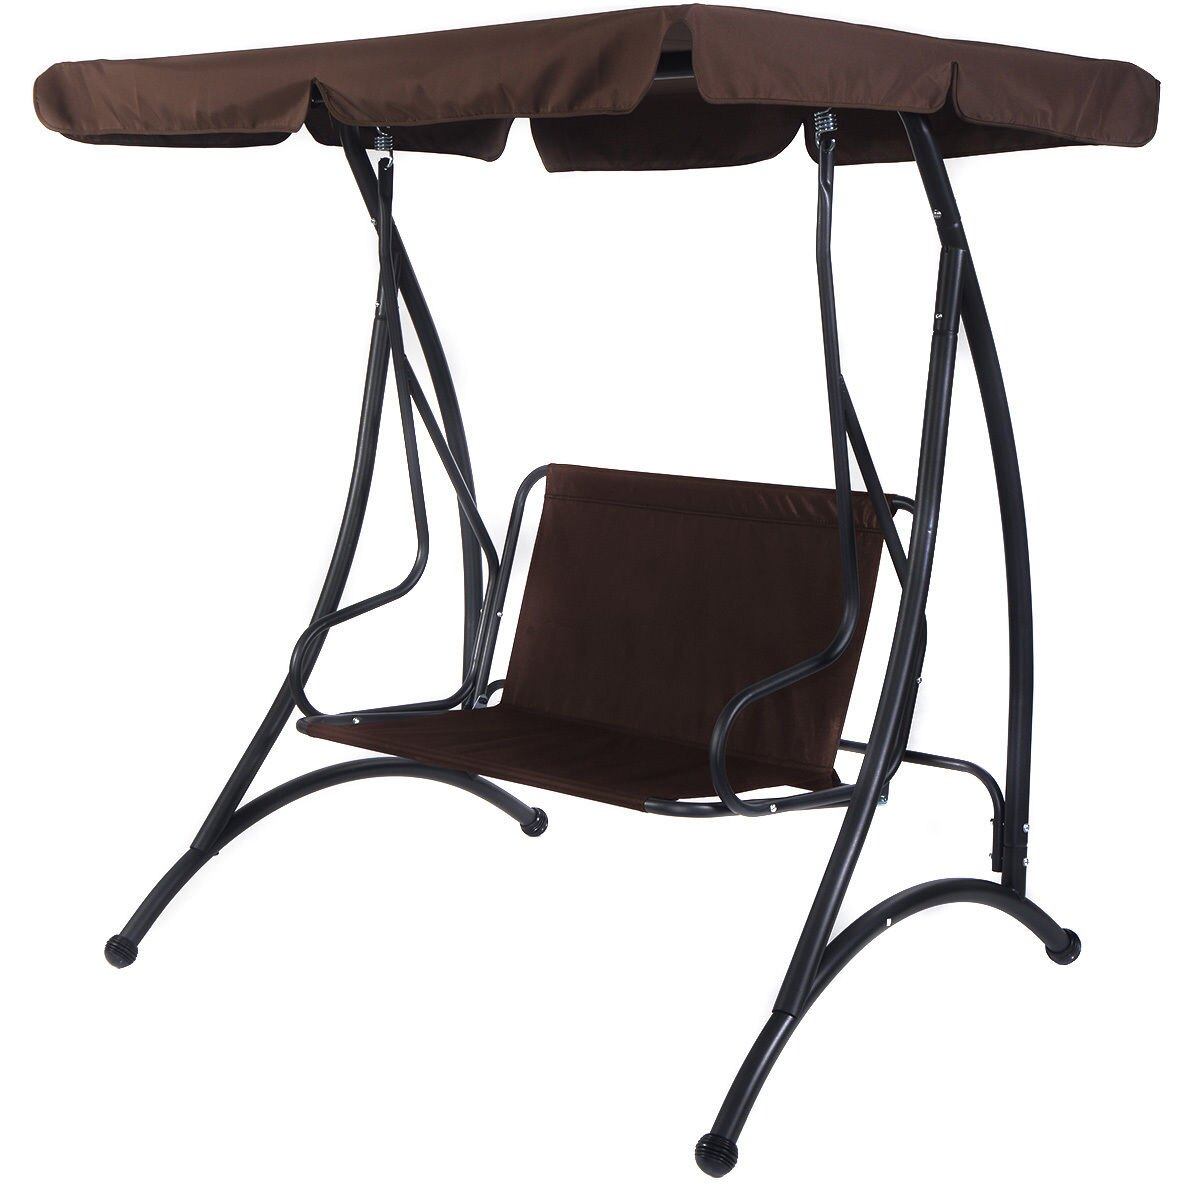 swing chair seat pink swivel desk costway brown 2 person canopy patio hammock cushioned furniture steel